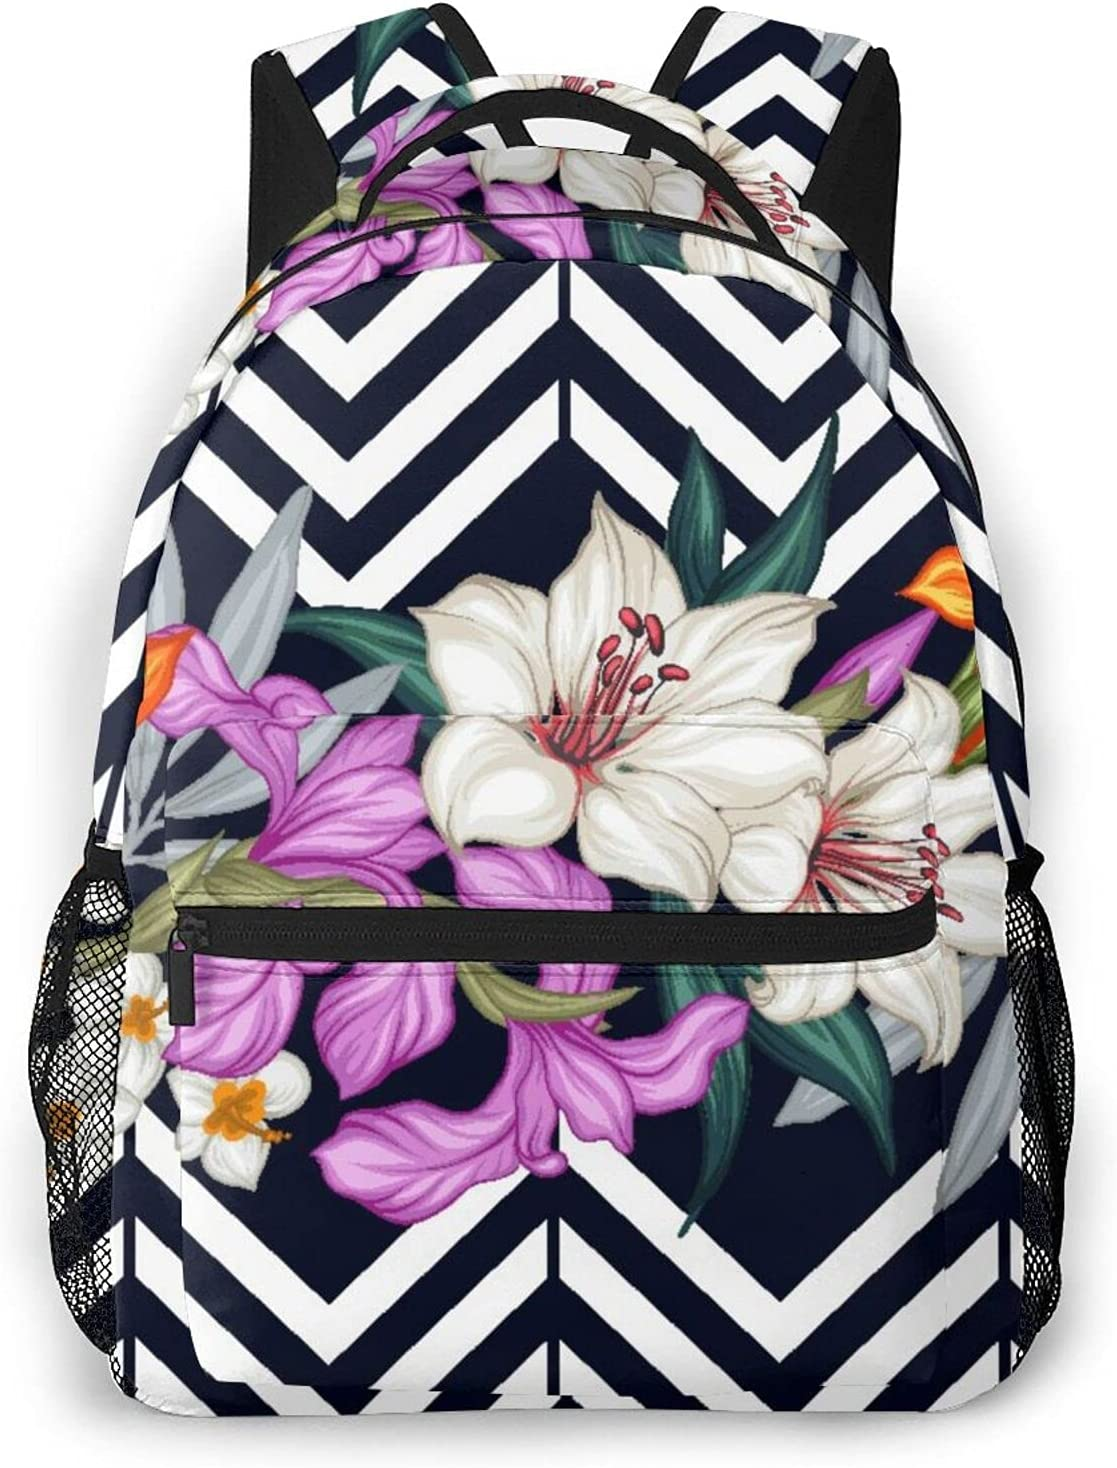 Backpack for Teens Men Women Packet Flower Tampa Mall Hawaiian Max 51% OFF Storage Blac